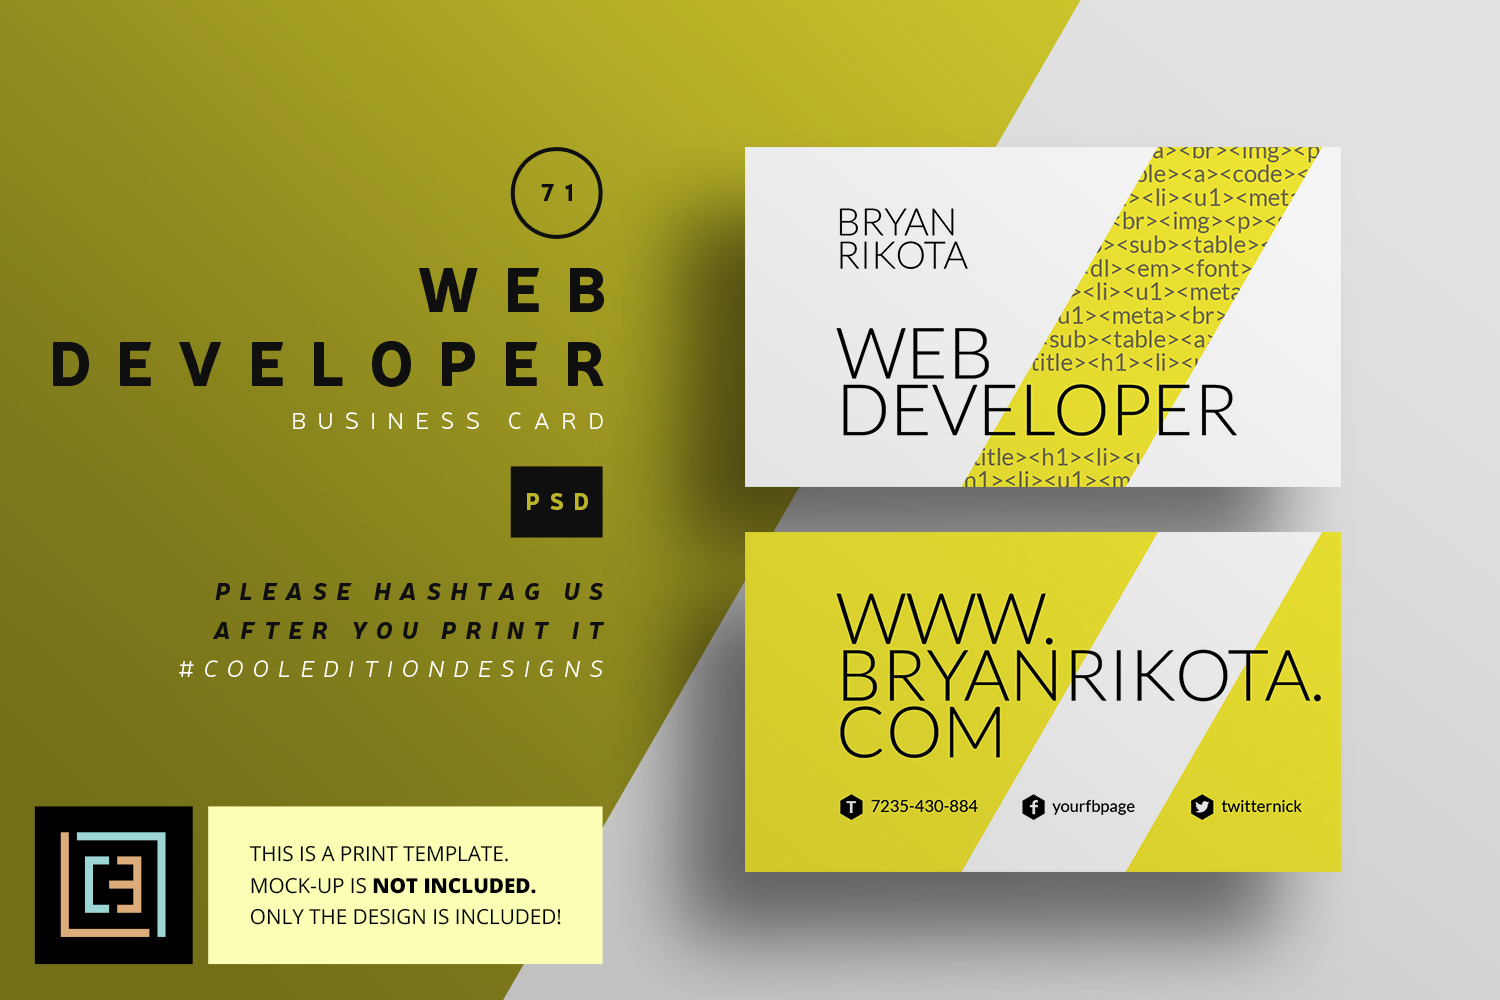 Web developer business card bc071 by design bundles web developer business card bc071 example image 1 reheart Choice Image